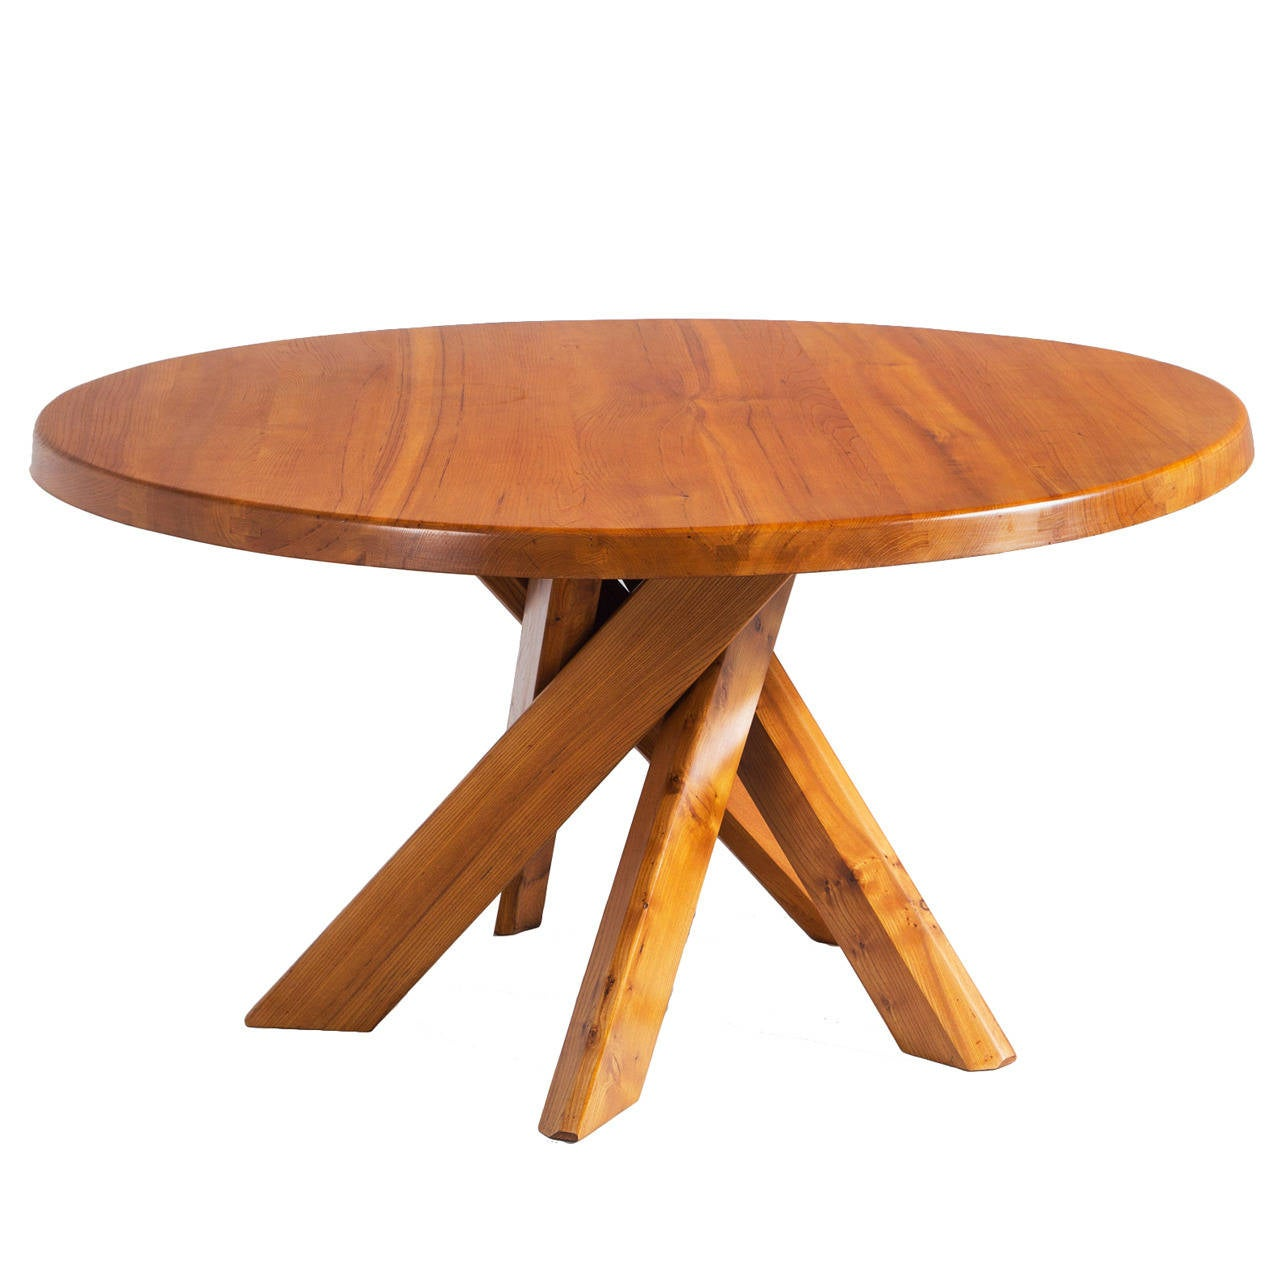 Well made round pedestal table with 5 crossed legs by pierre chapo at 1stdibs - Crossed leg dining table ...